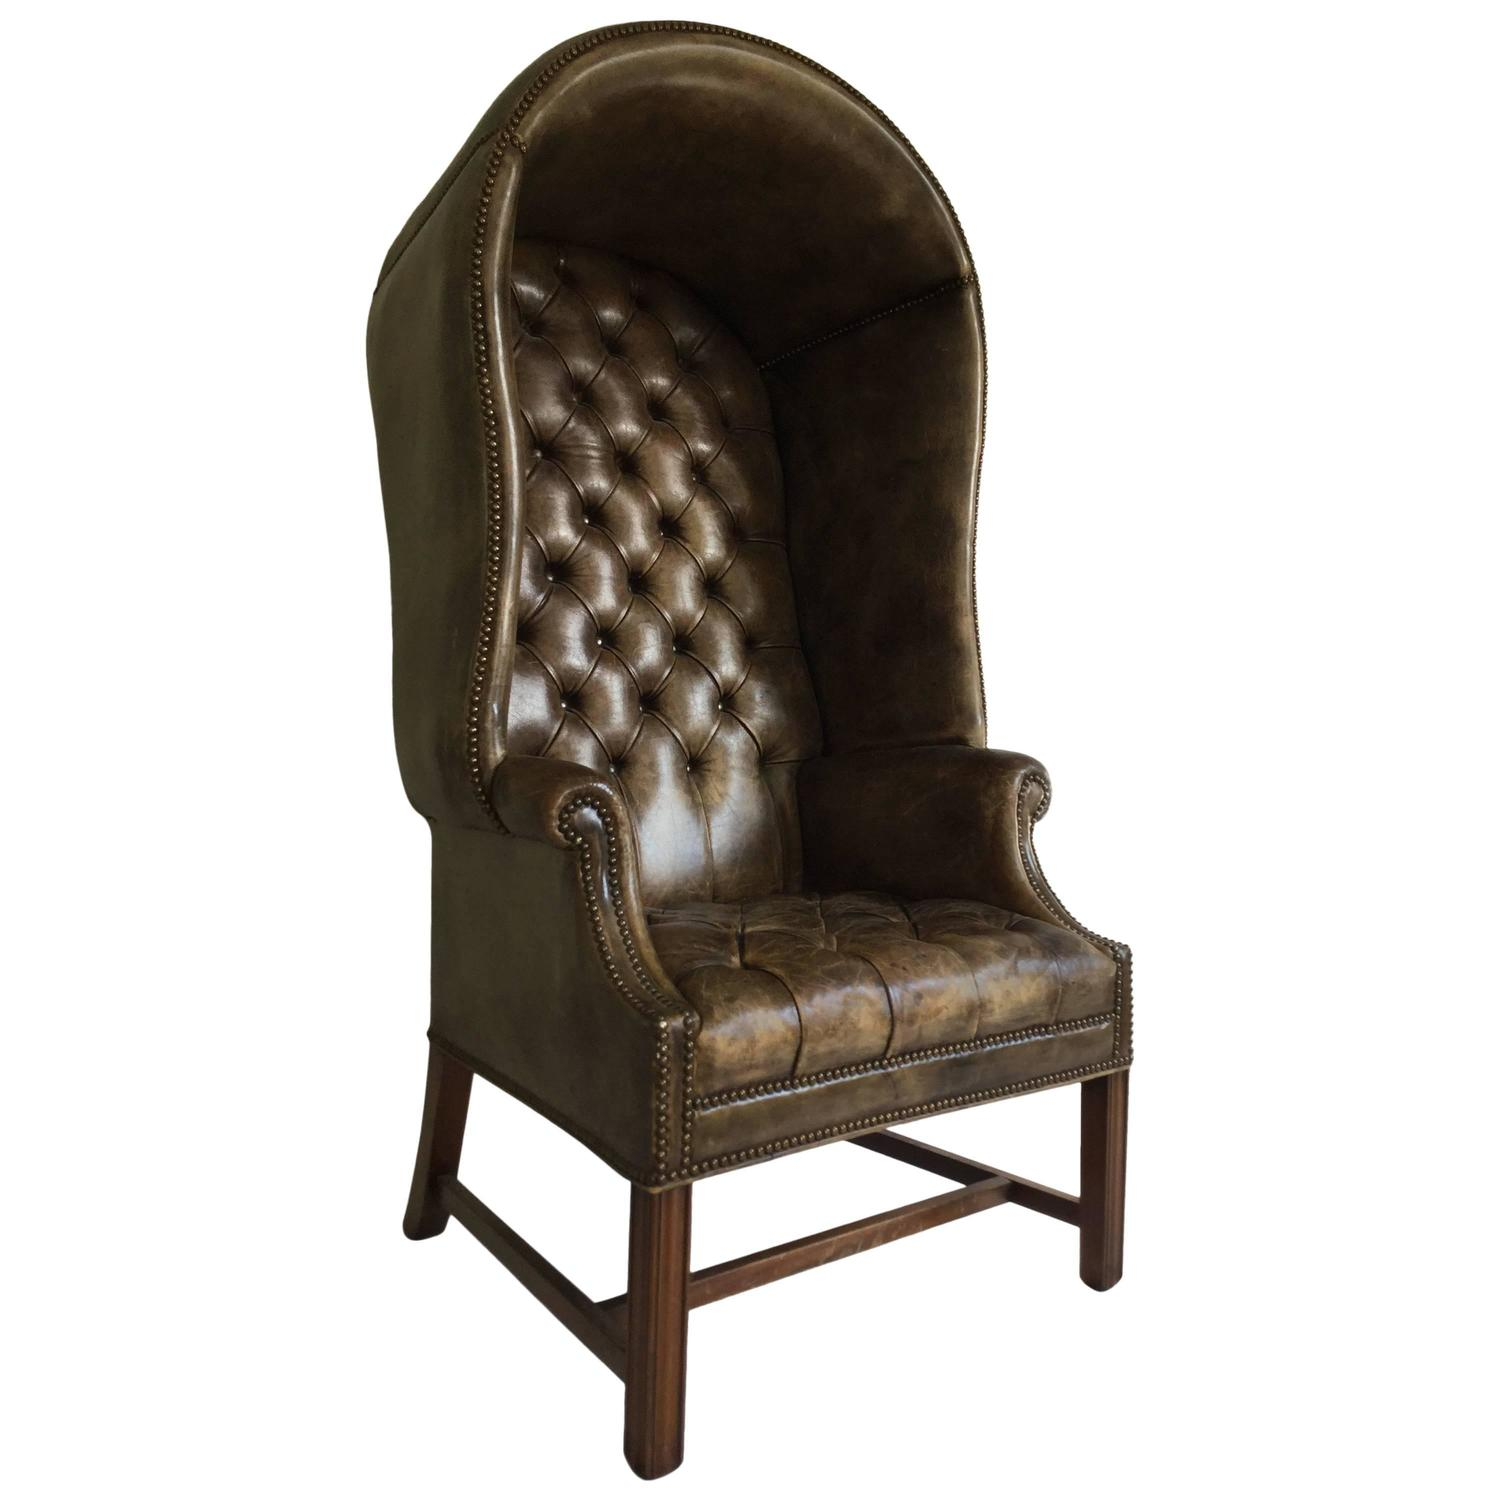 Tufted Leather Sofa And Chair: Leather Porters Chair Tufted Chesterfield Sofa Wingback At